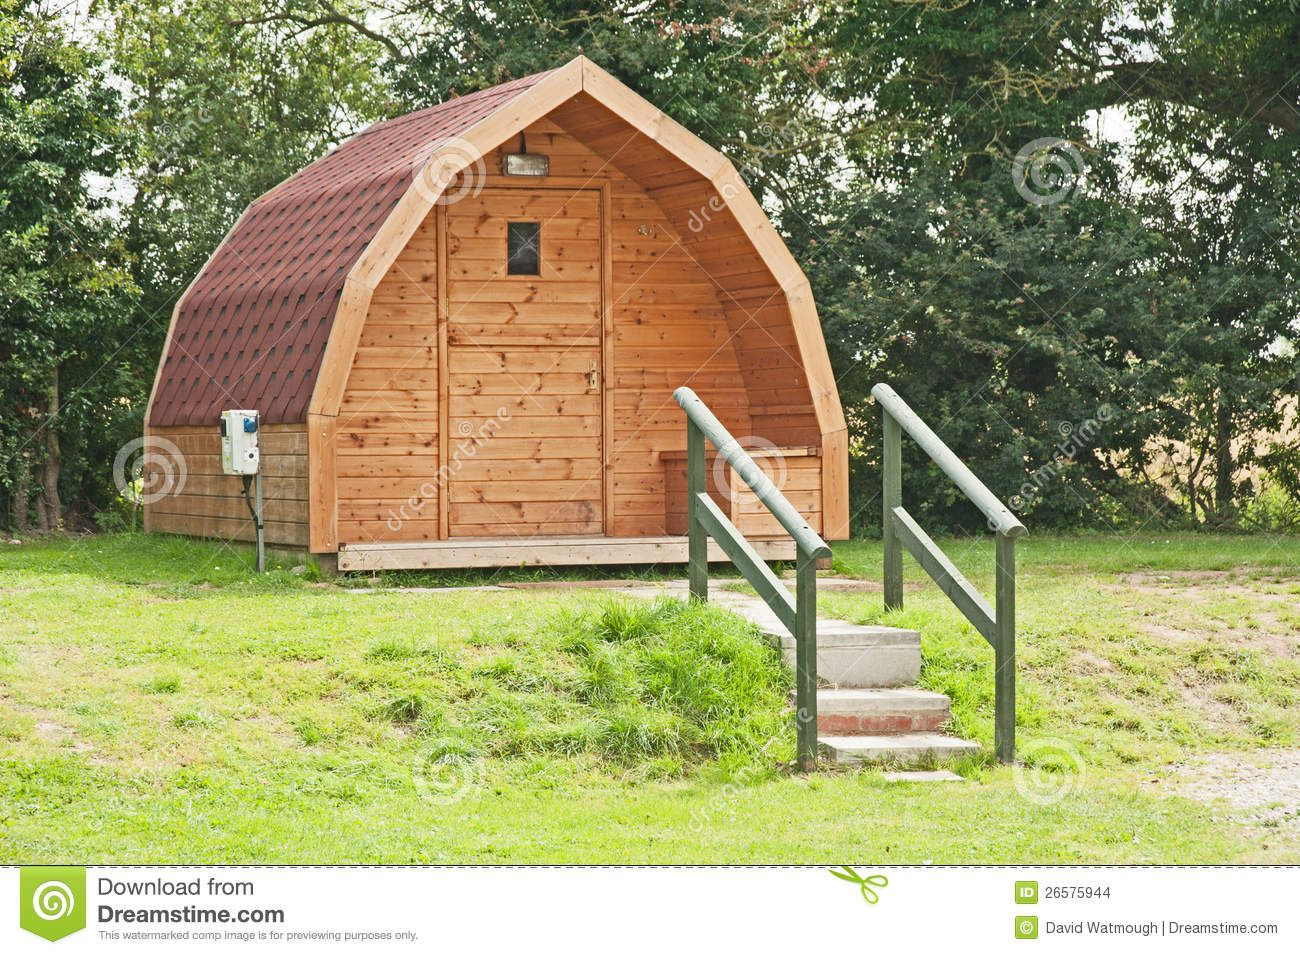 wood tent - Google Search & wood tent - Google Search | lodging ideas | Pinterest | Woods